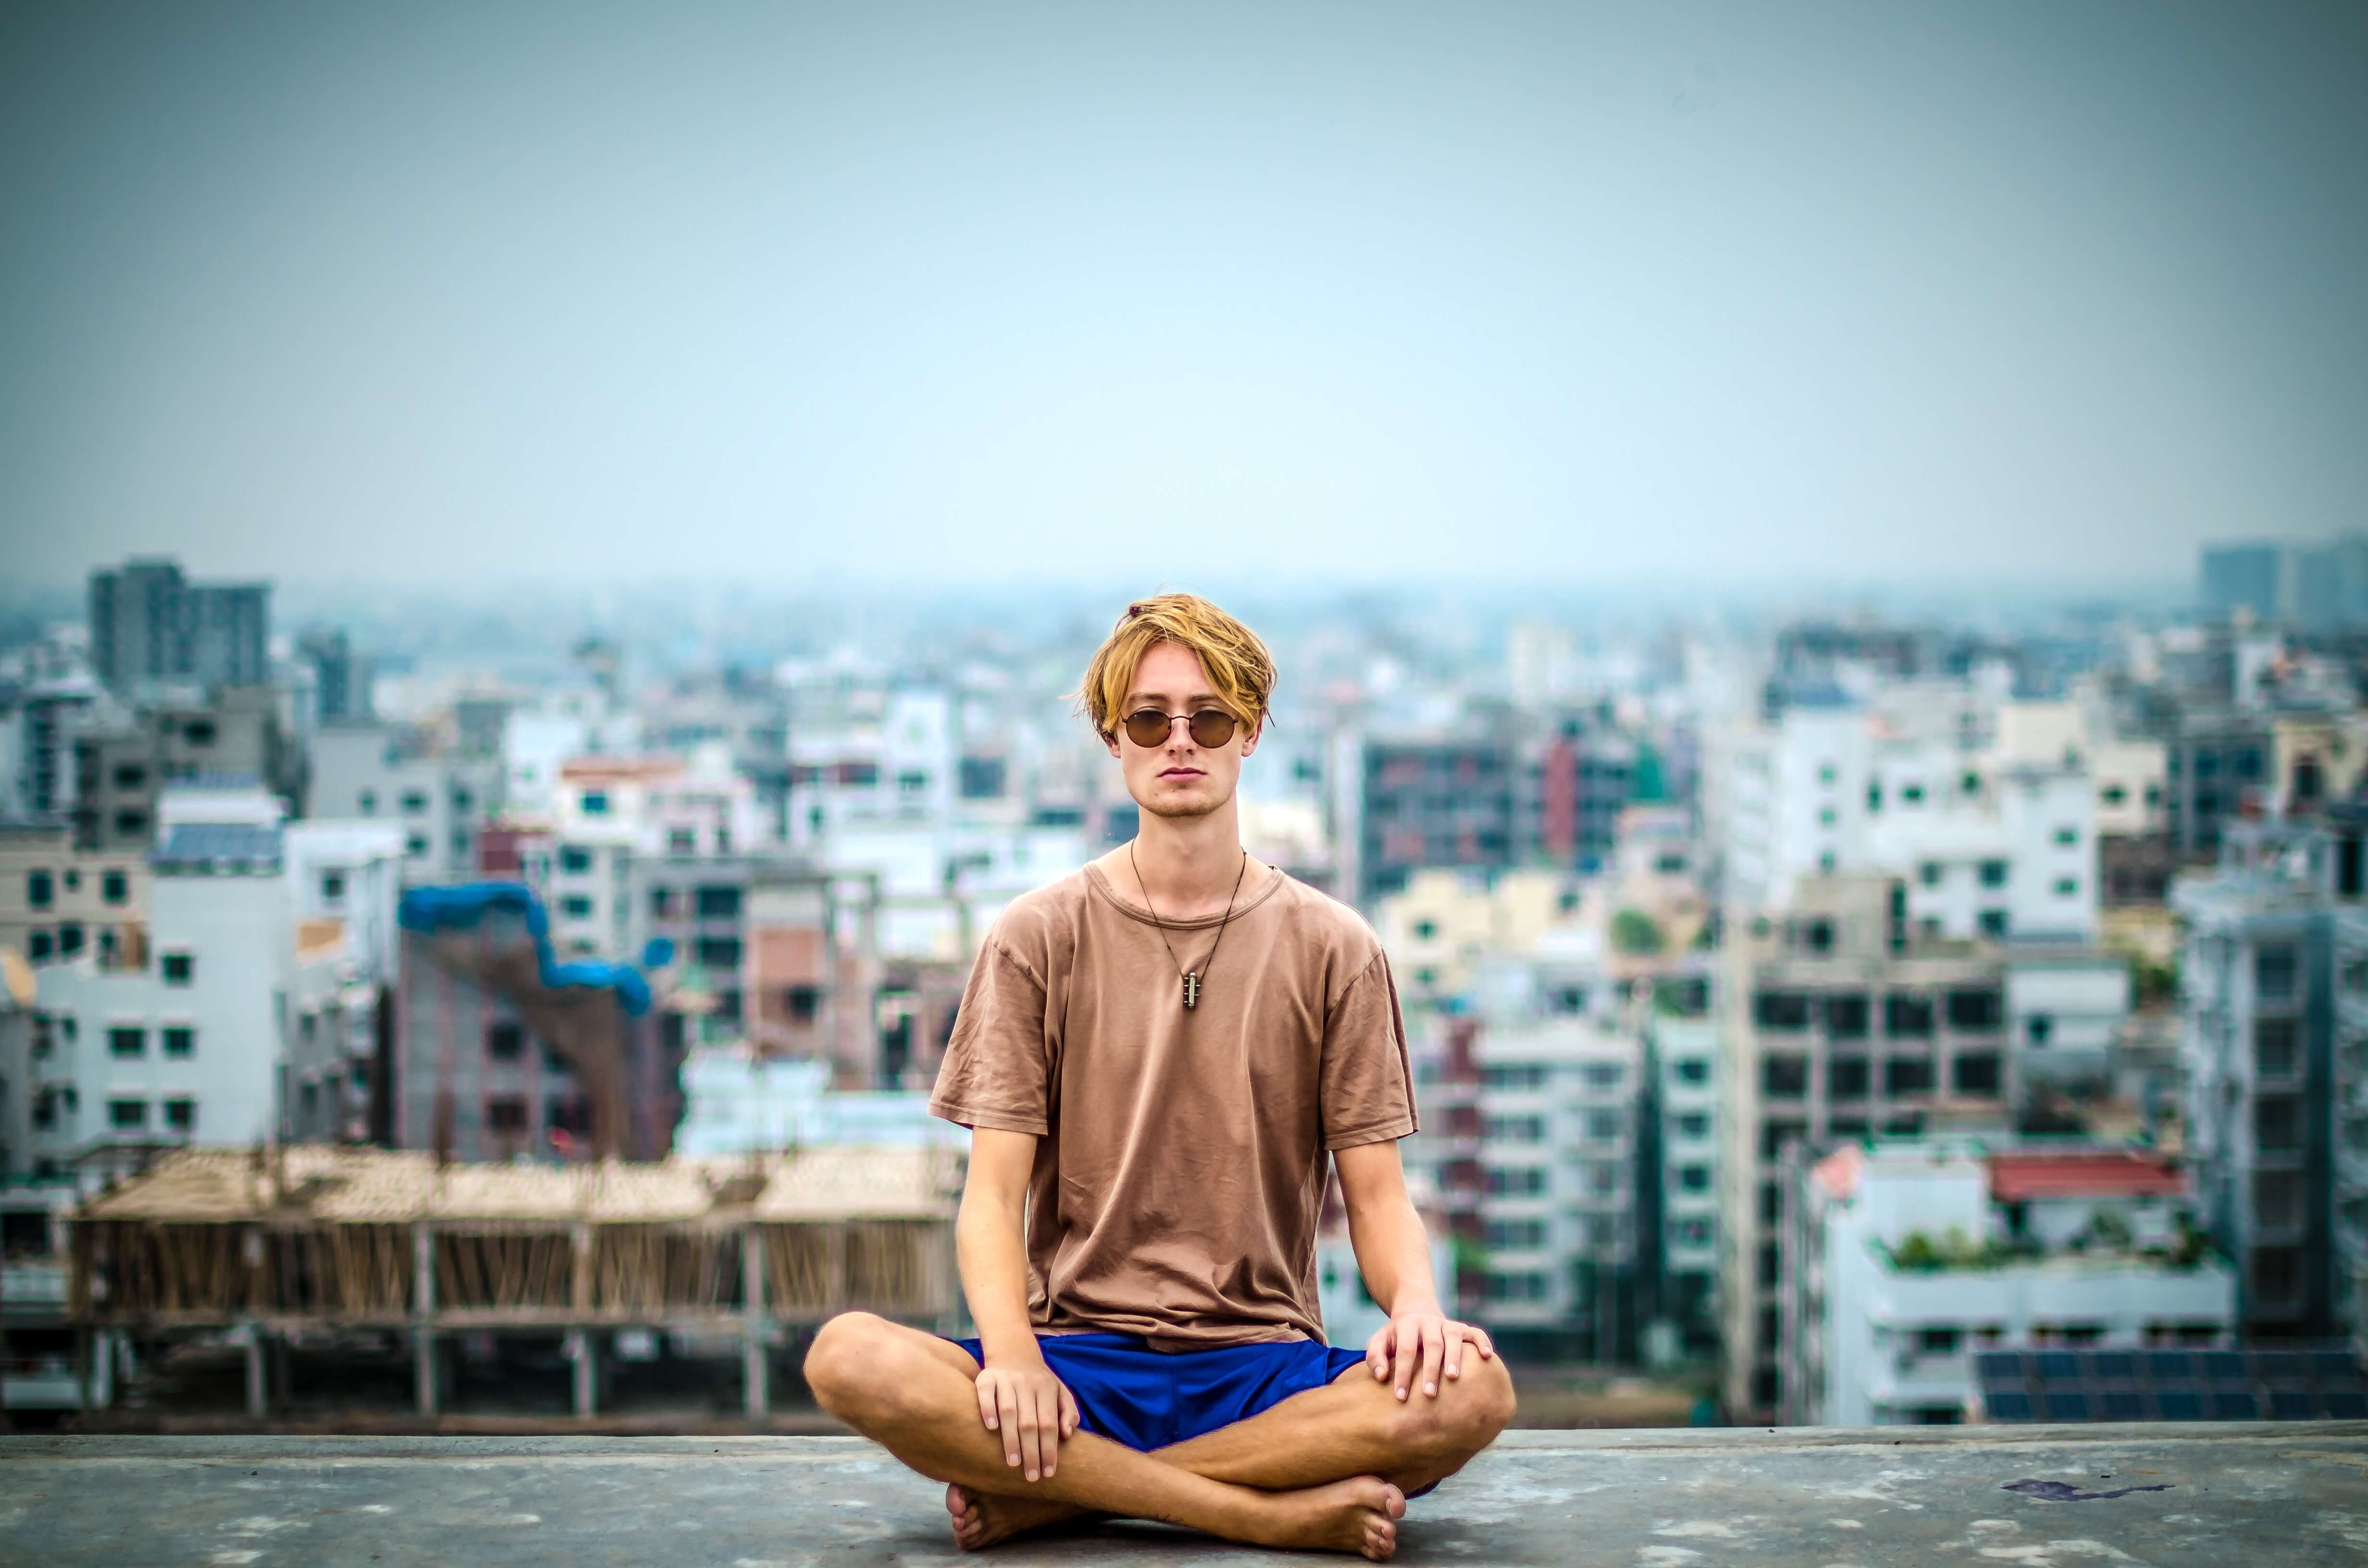 man meditating in city